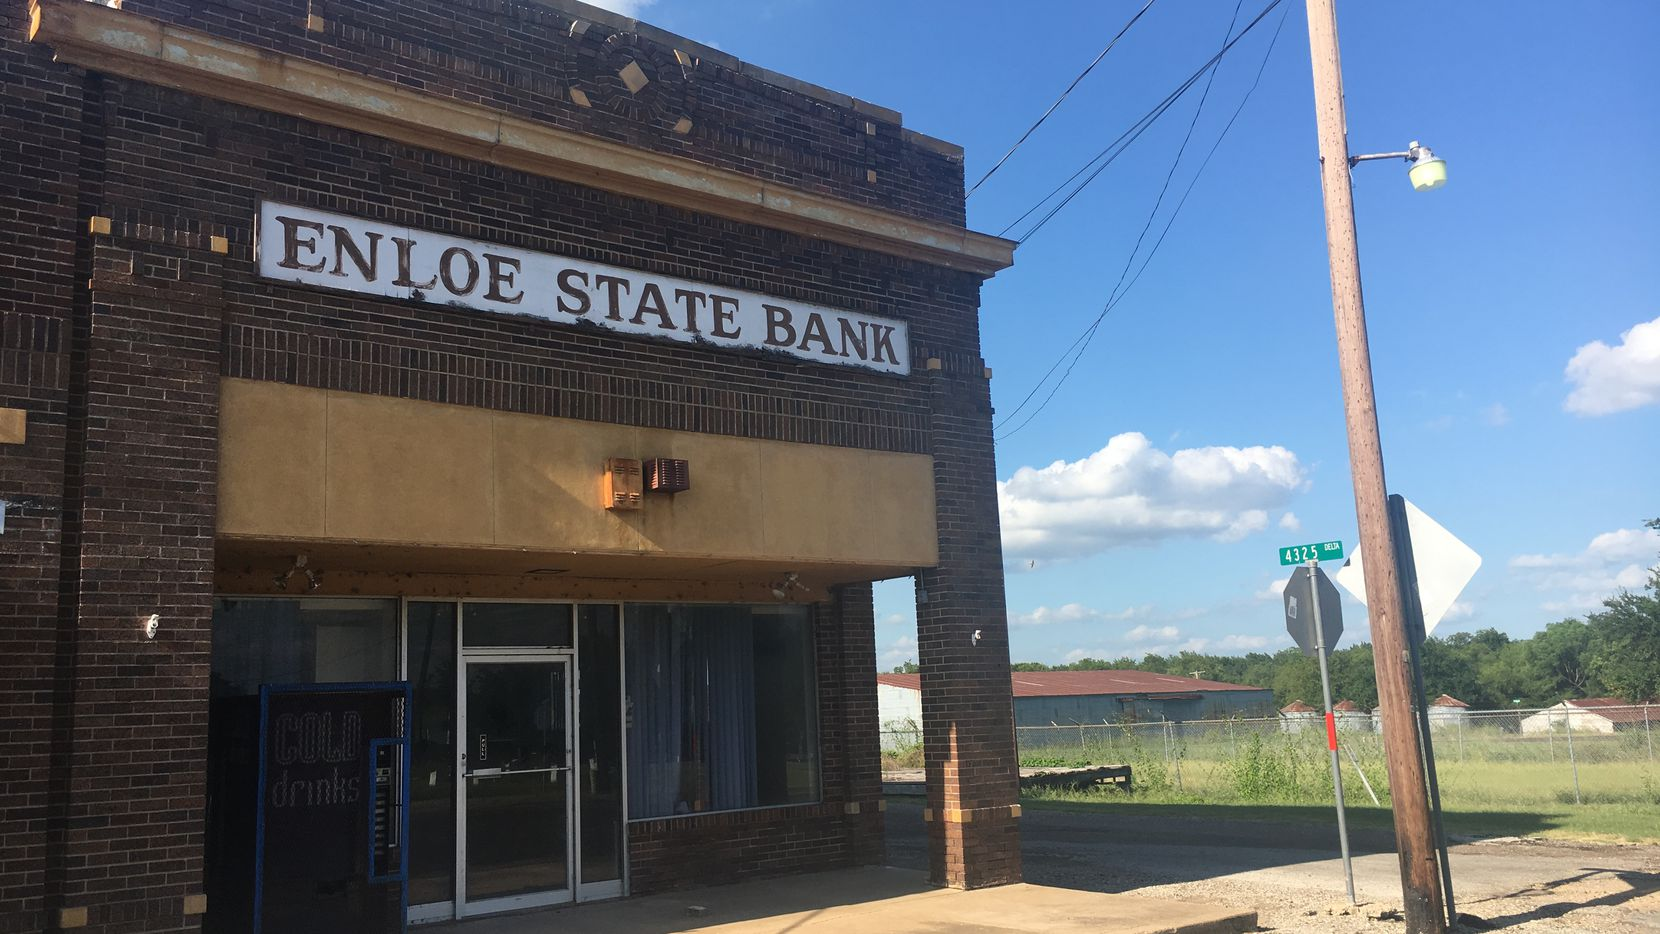 The building that once housed the Enloe State Bank. The building sits on the corner of a stretch of empty storefronts.